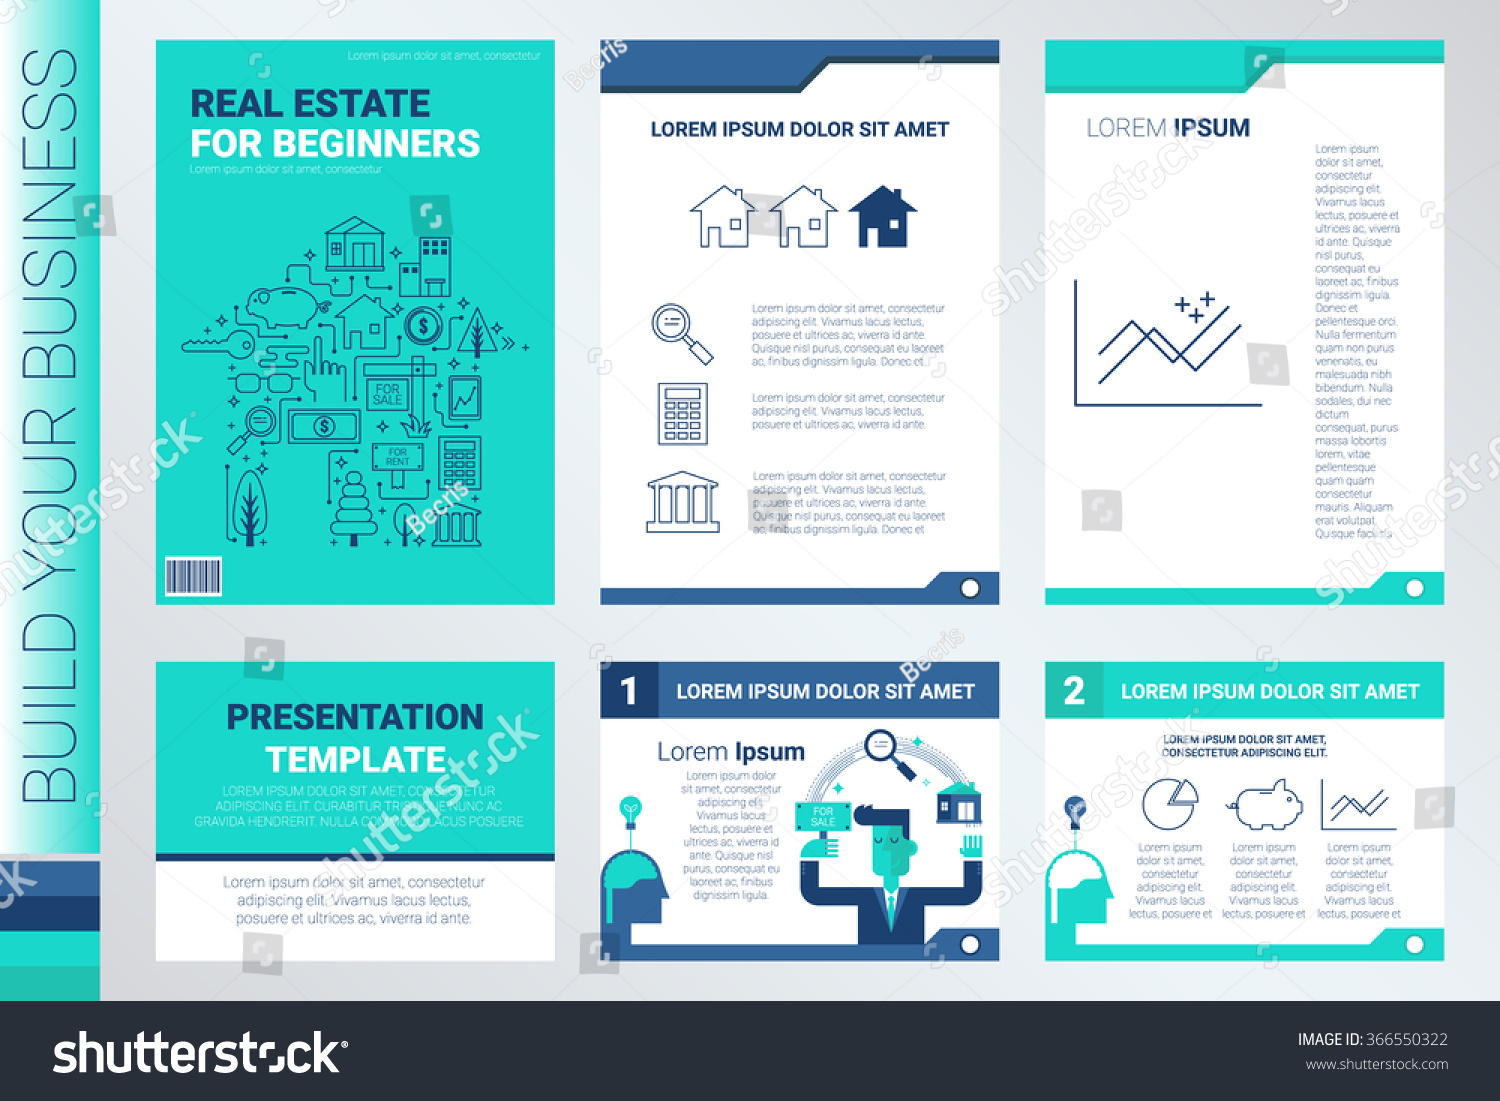 real estate book cover presentation template stock vector royalty